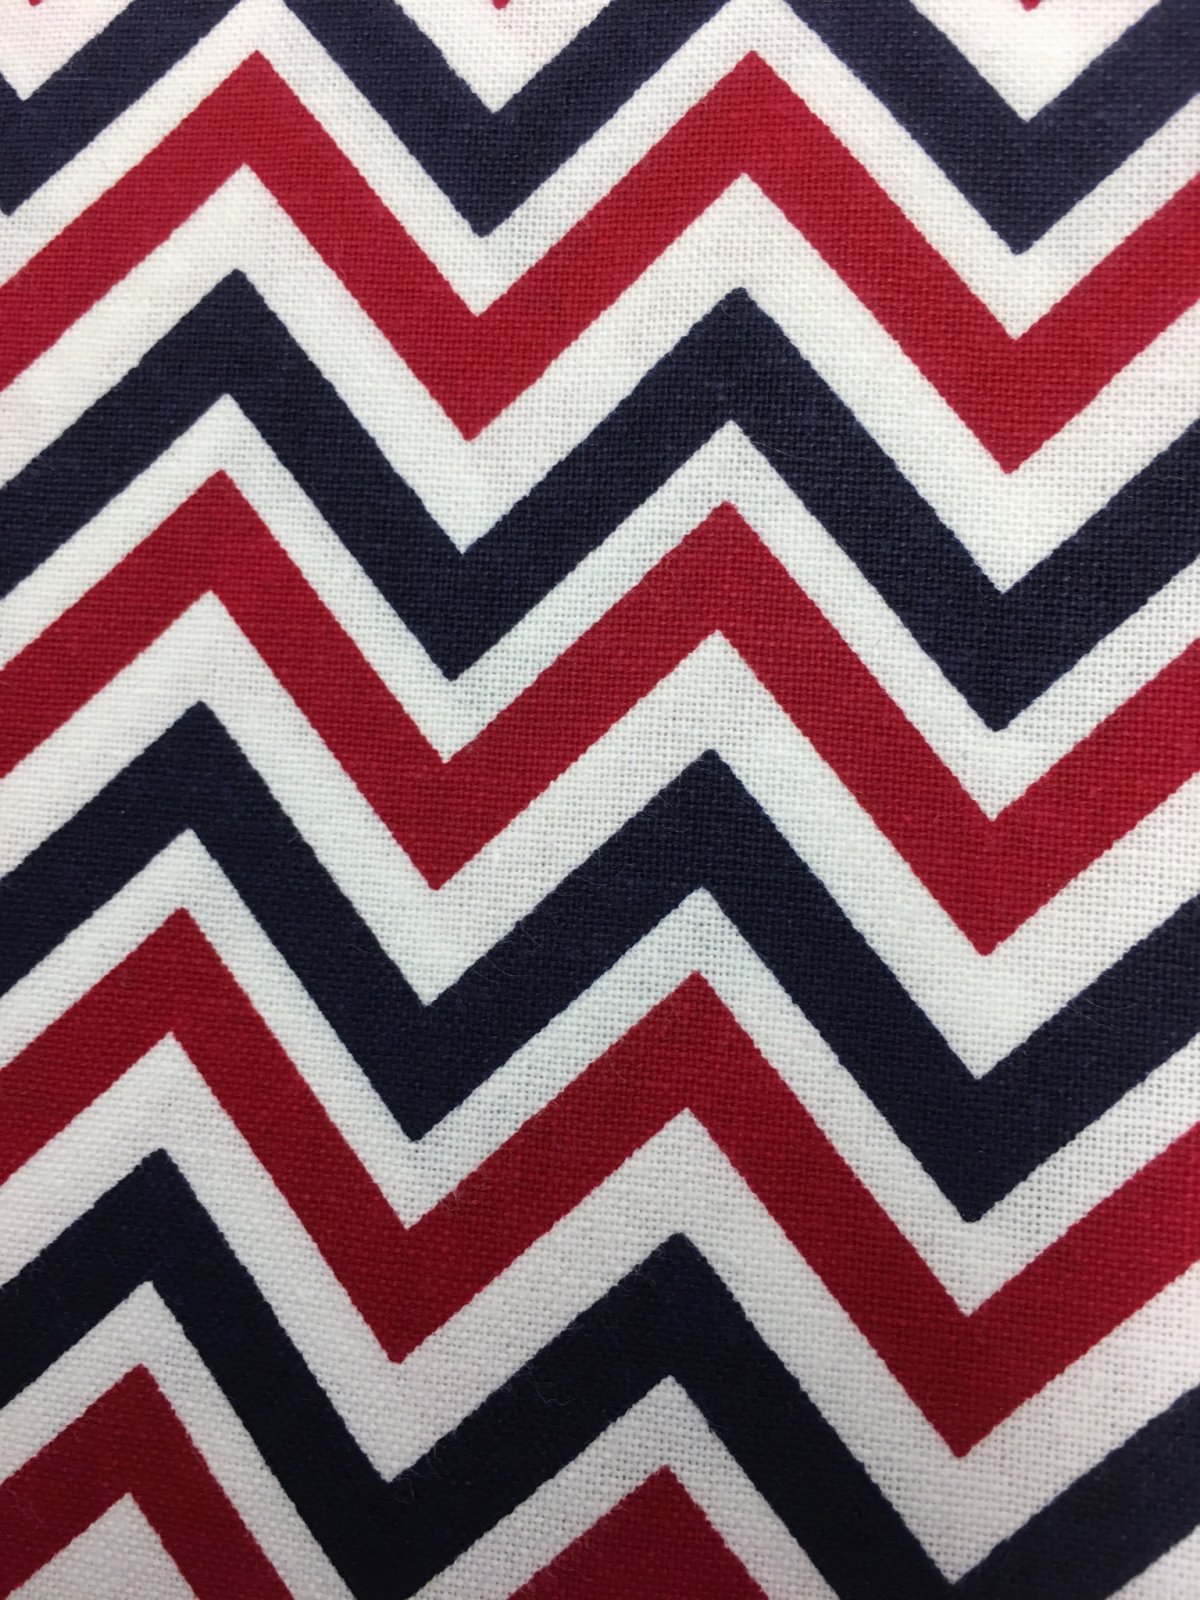 Sweet Liberty - Red, White & Blue Chevrons BTR6917 RED